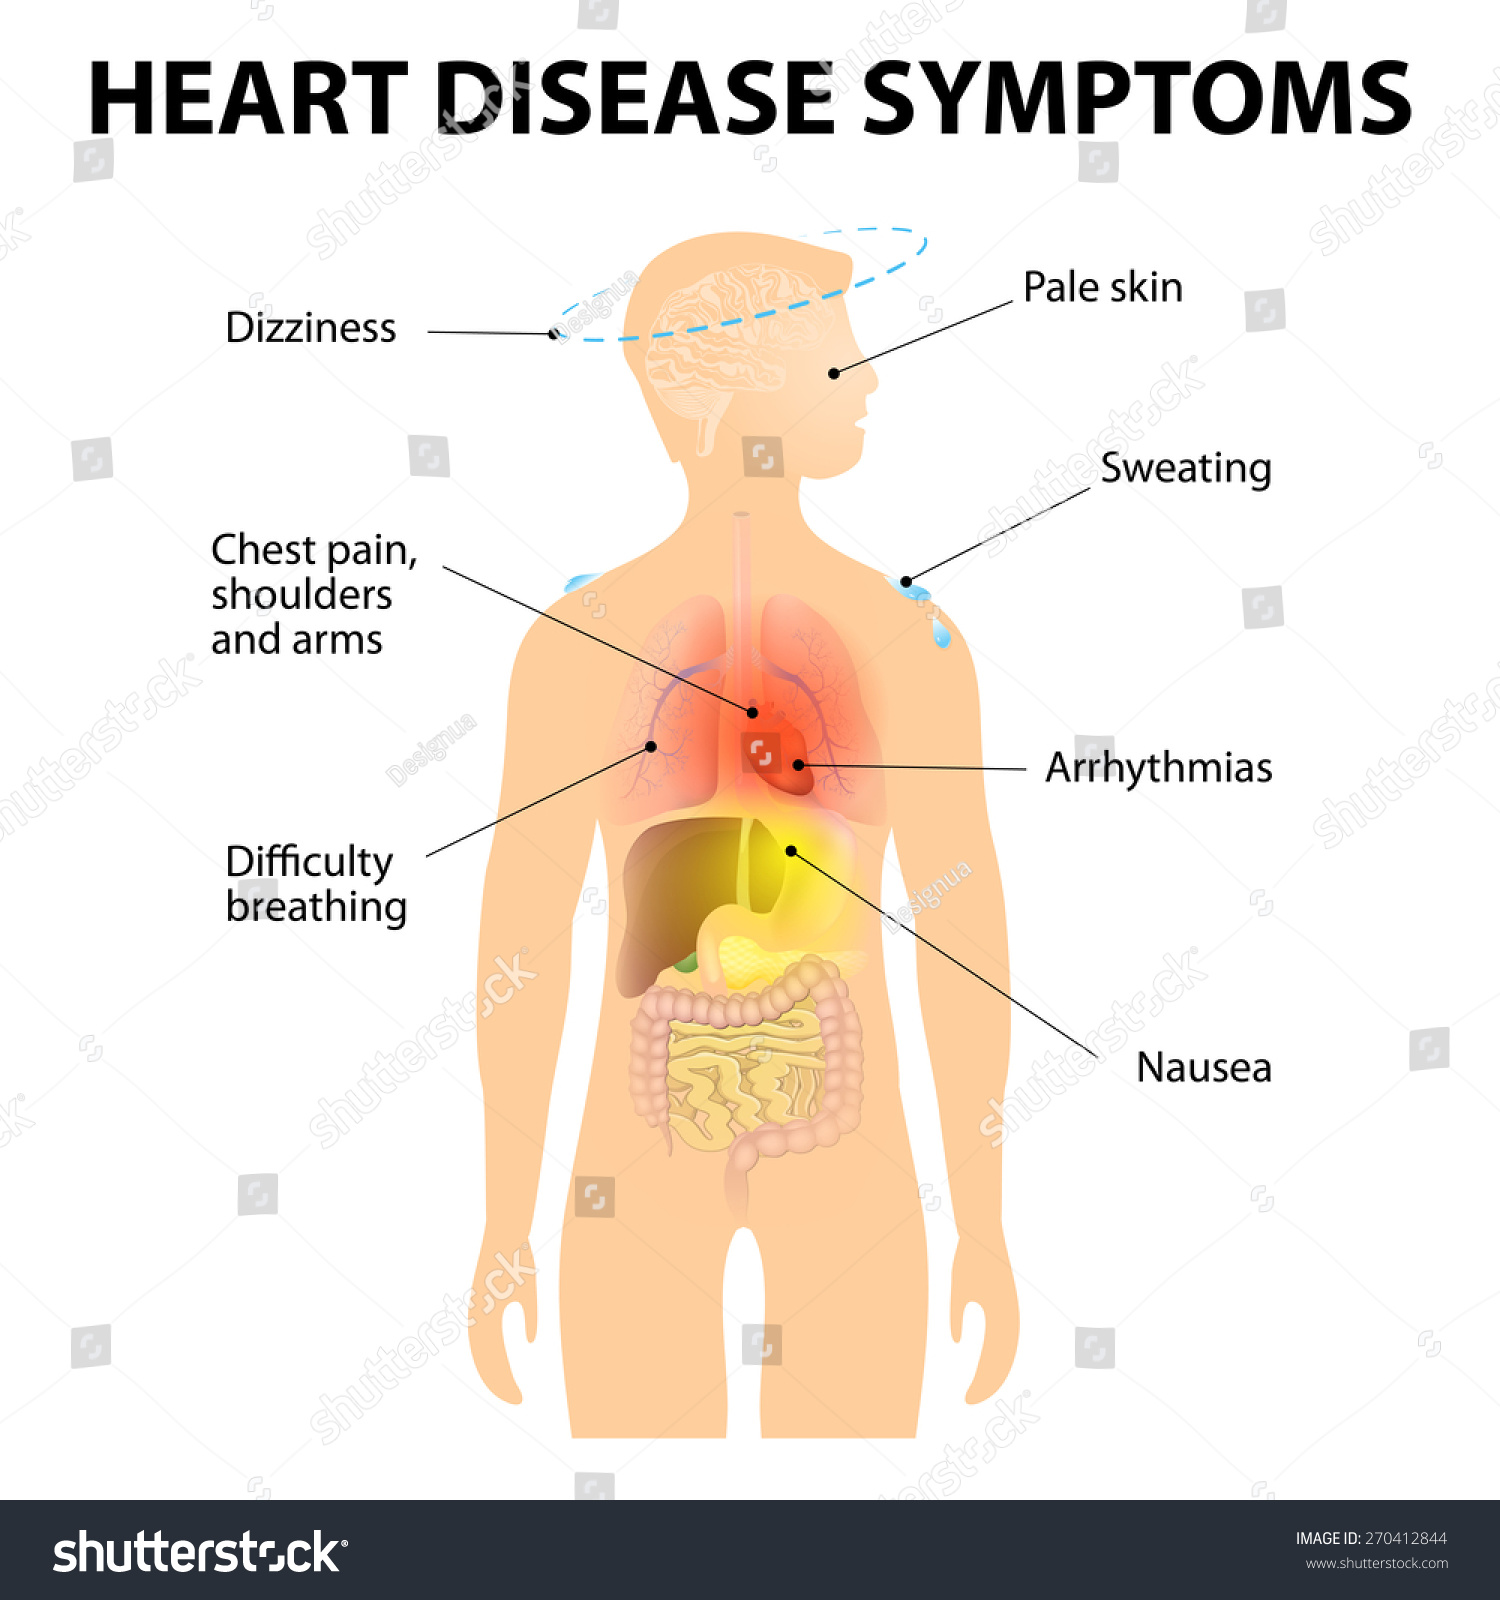 What are some symptoms of heart damage?